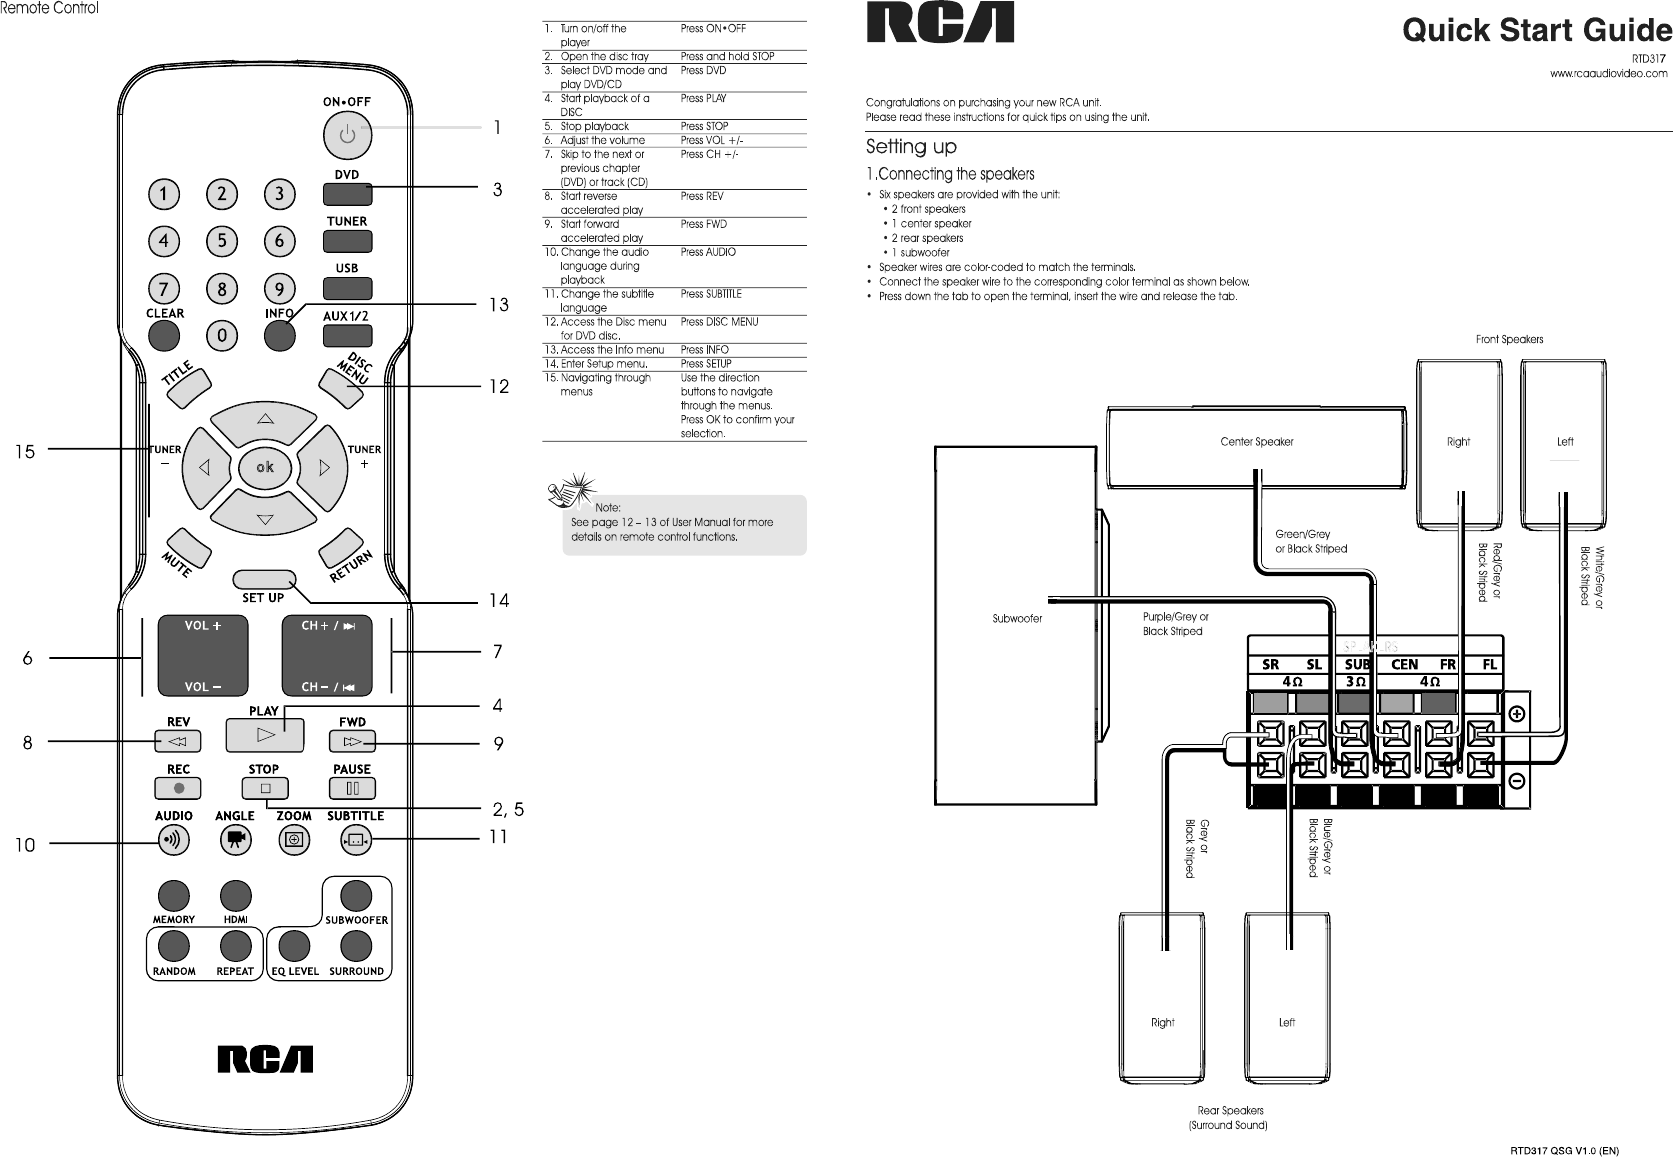 rca home theater system rtd317 user guide manualsonline com rh audio manualsonline com RCA 5 Disc Player Manual Old RCA Manuals